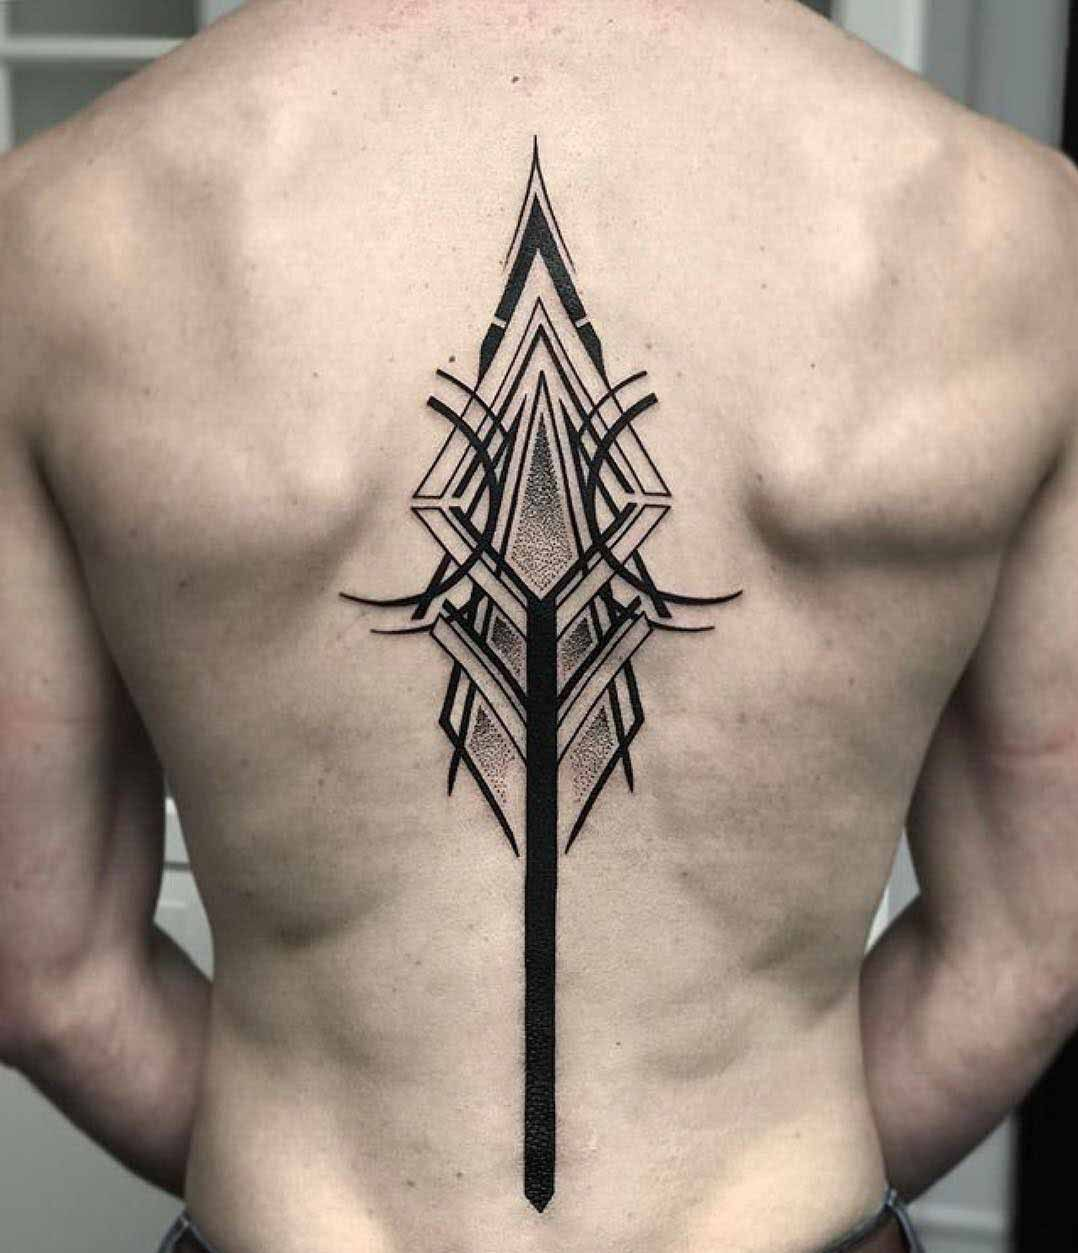 sumbolic spine tattoo